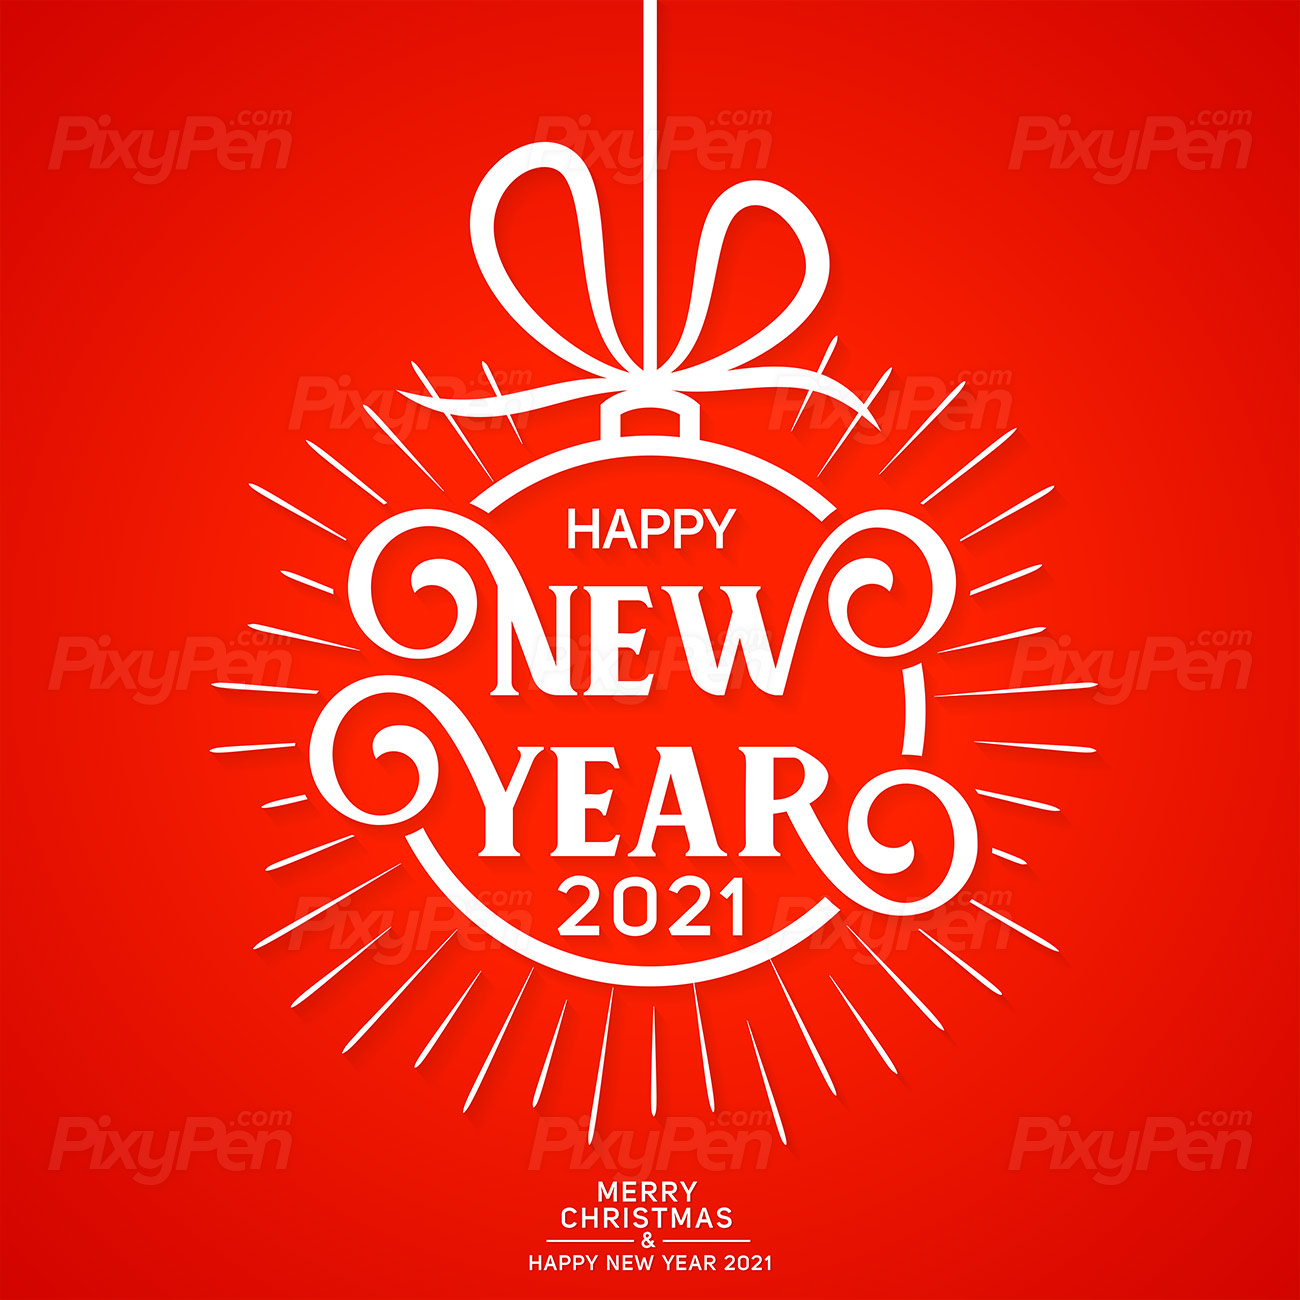 merry christmas and happy new year 2021 vector pixypen merry christmas and happy new year 2021 vector